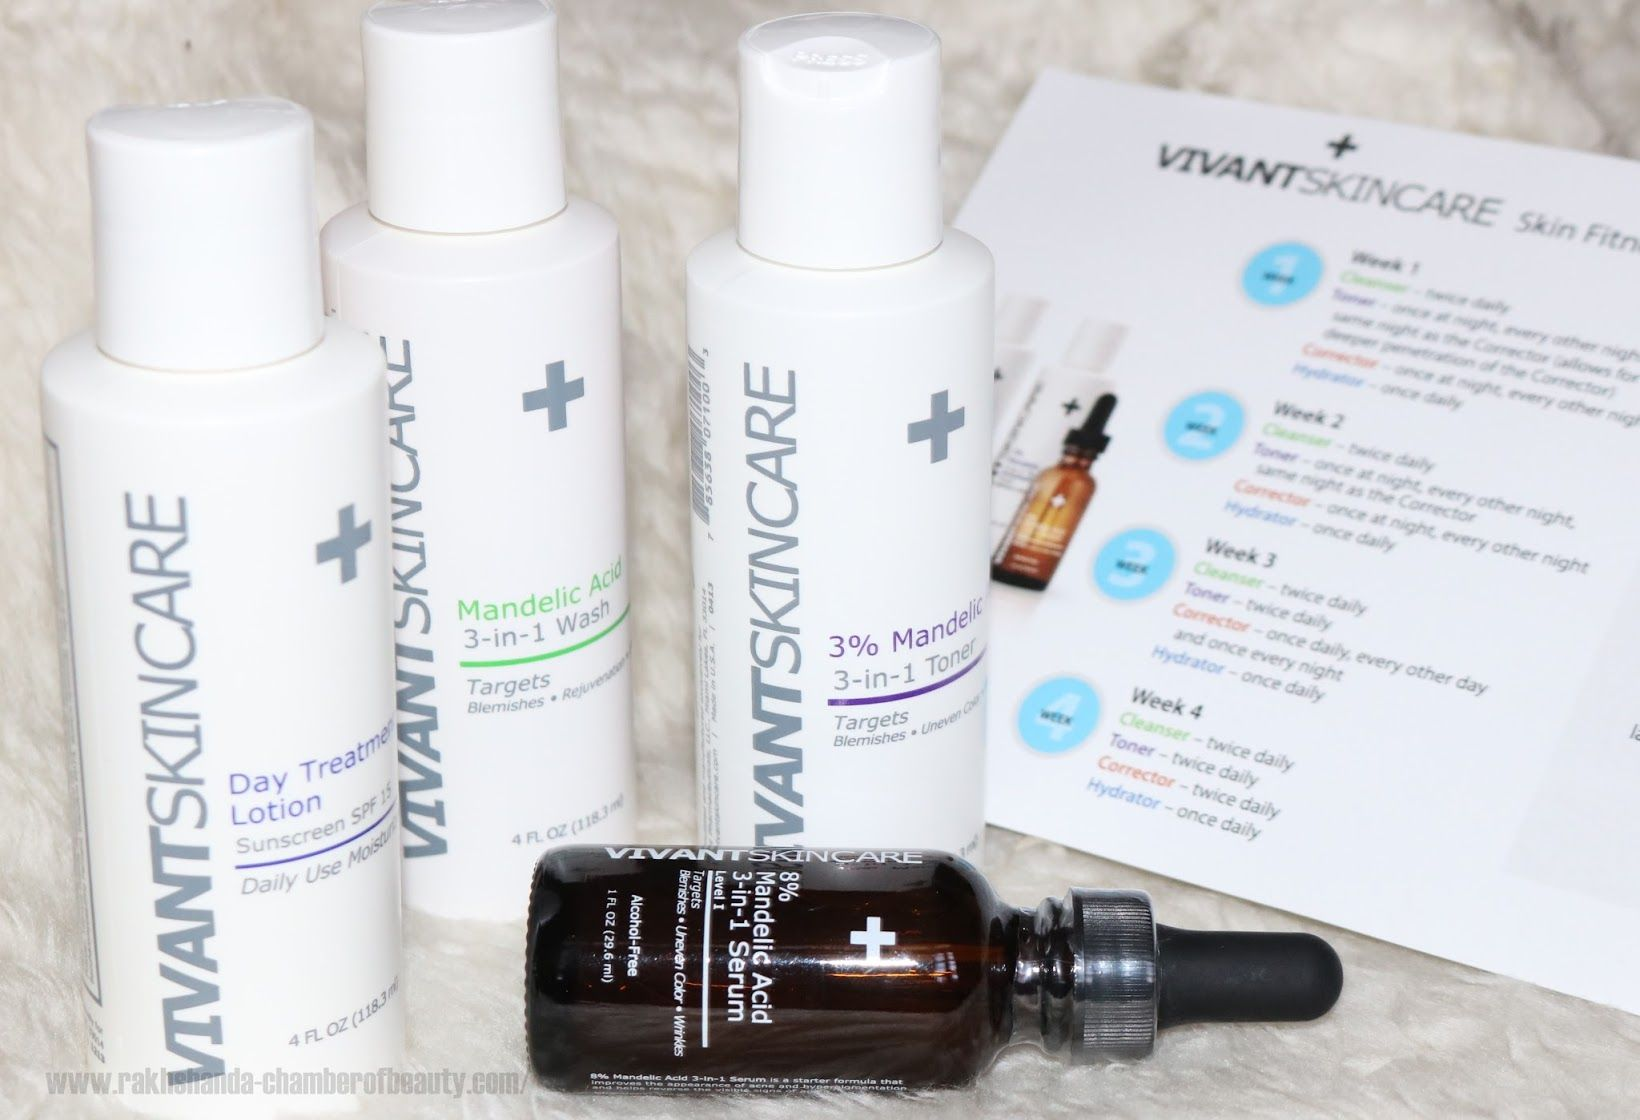 Chamber Of Beauty Vivant Skincare Skin Fitness System First Impression Skin Care Skin Glowy Skin